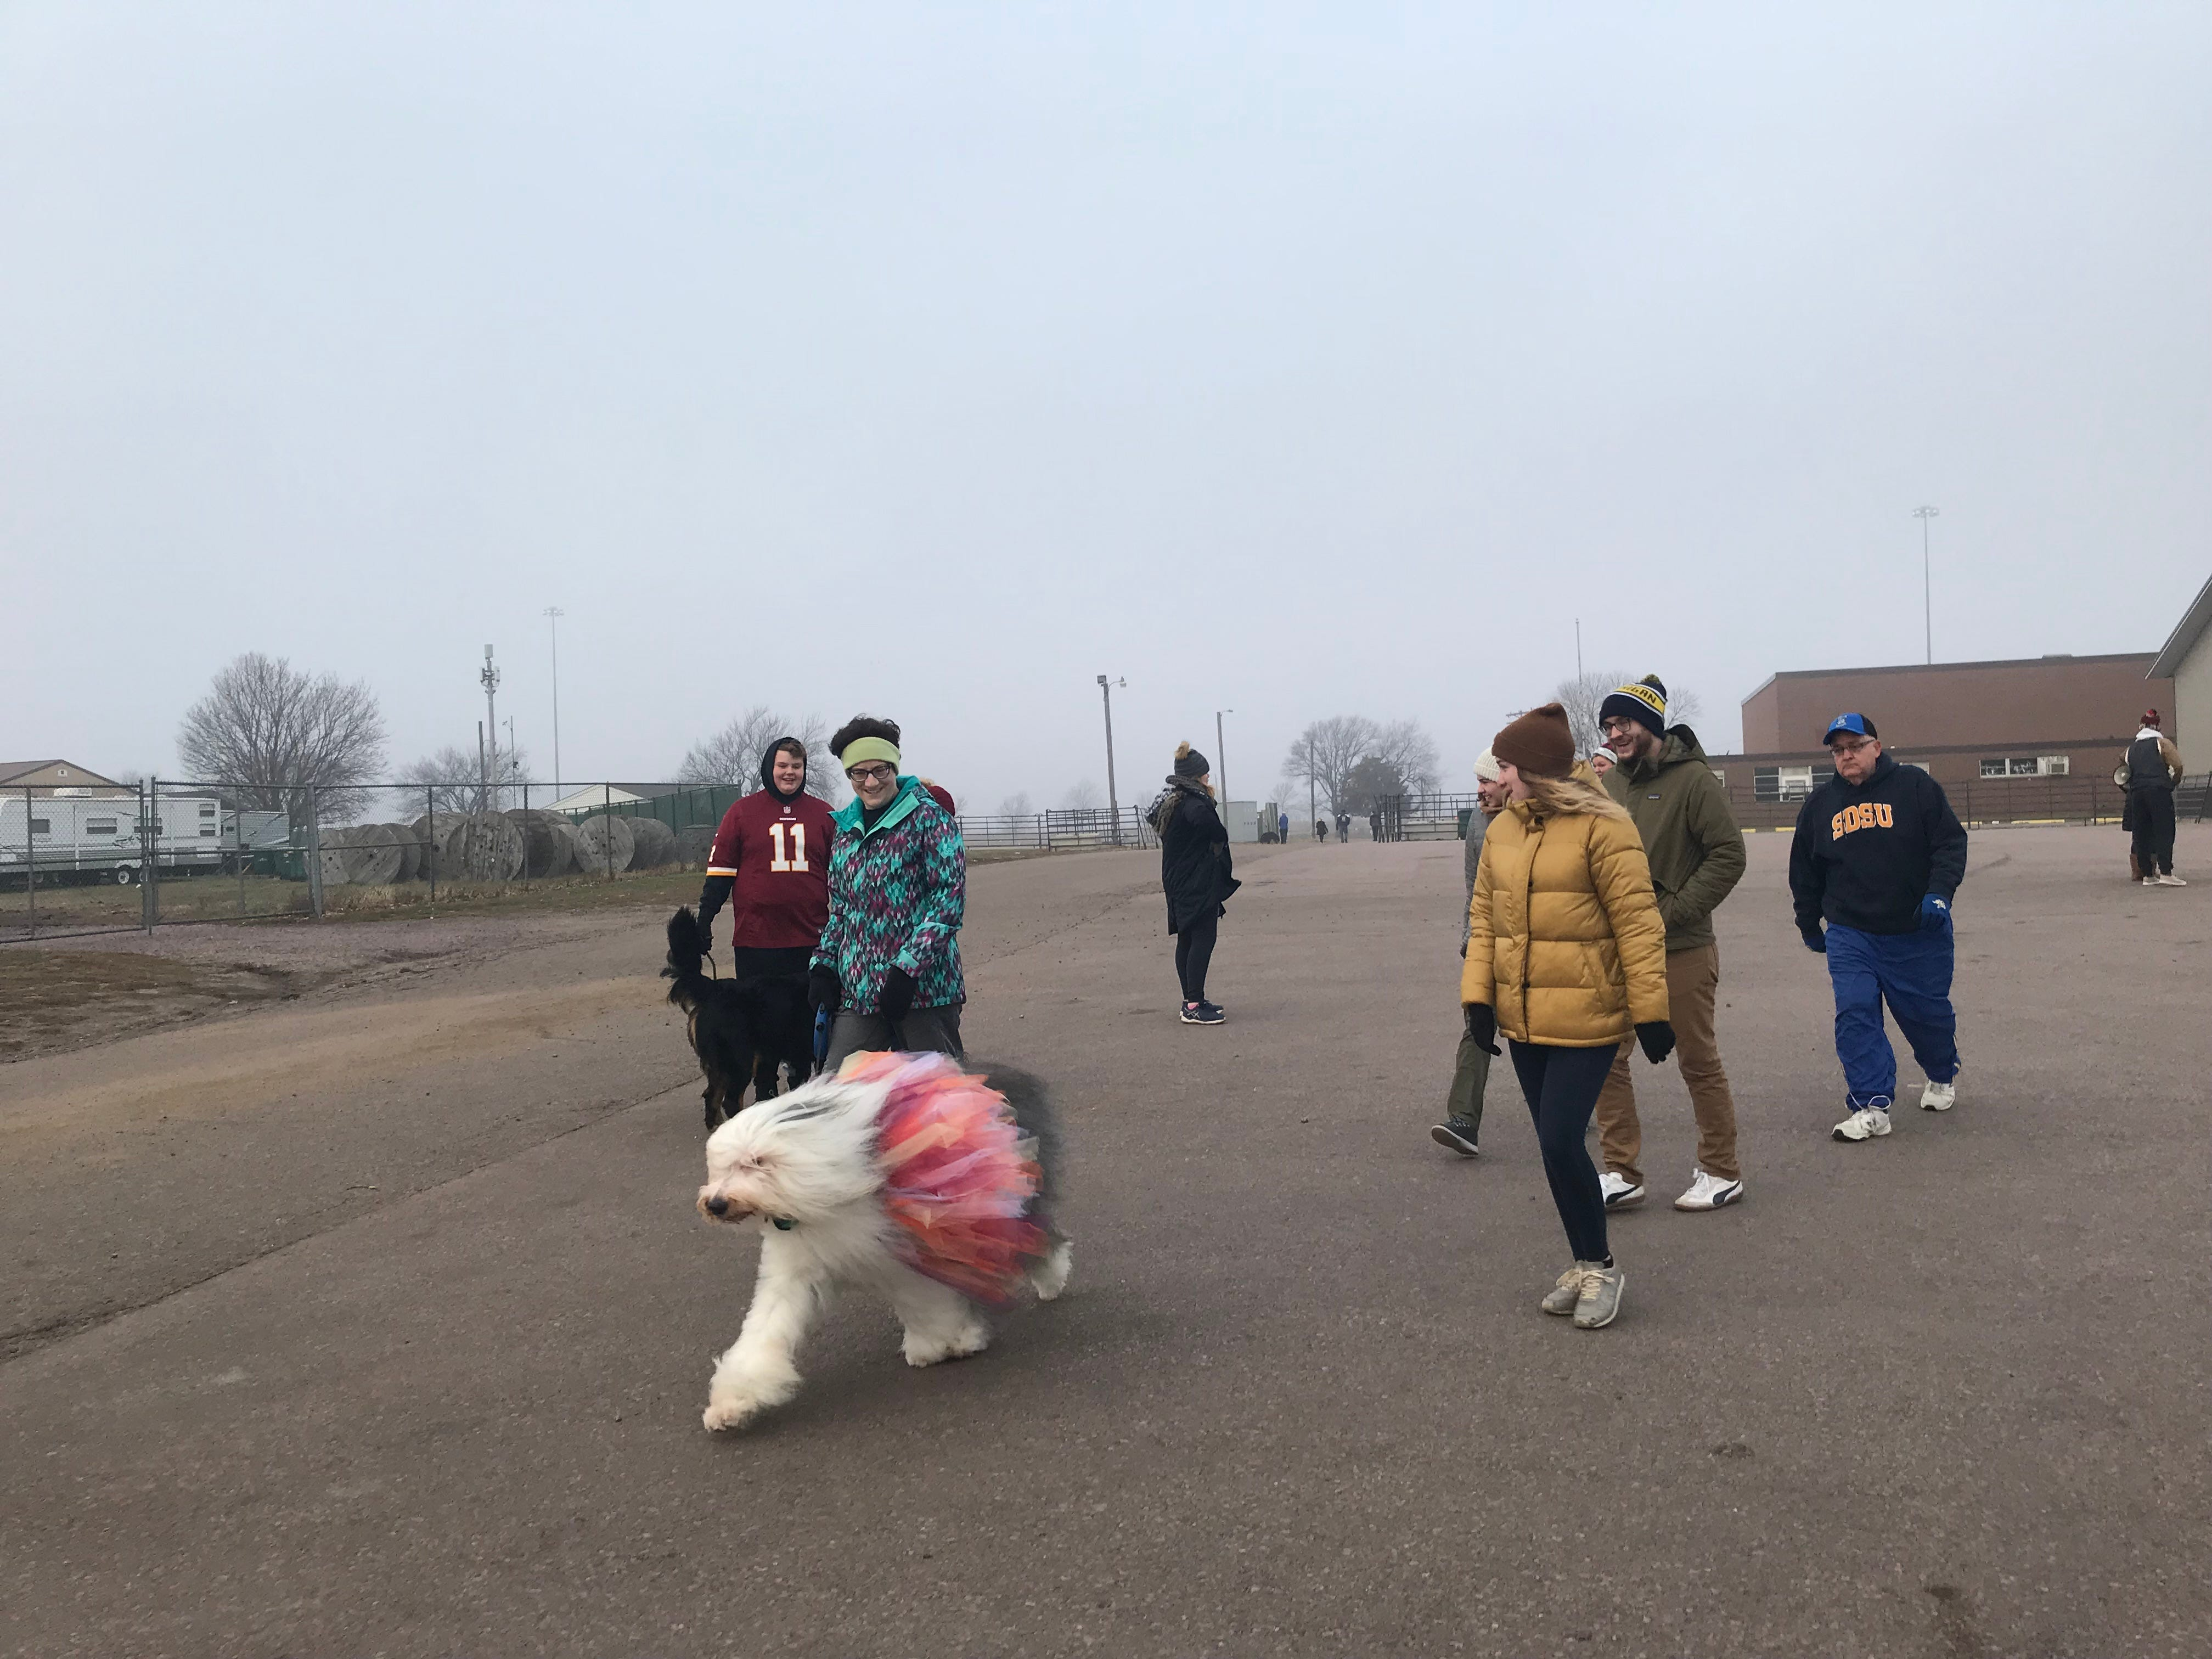 The 2018 Run for Food is tradition for Michelle Erpenbach and her family. The former City Councilor dressed her dog Chumley in multi-colored tulle to give him the look of turkey plumage.